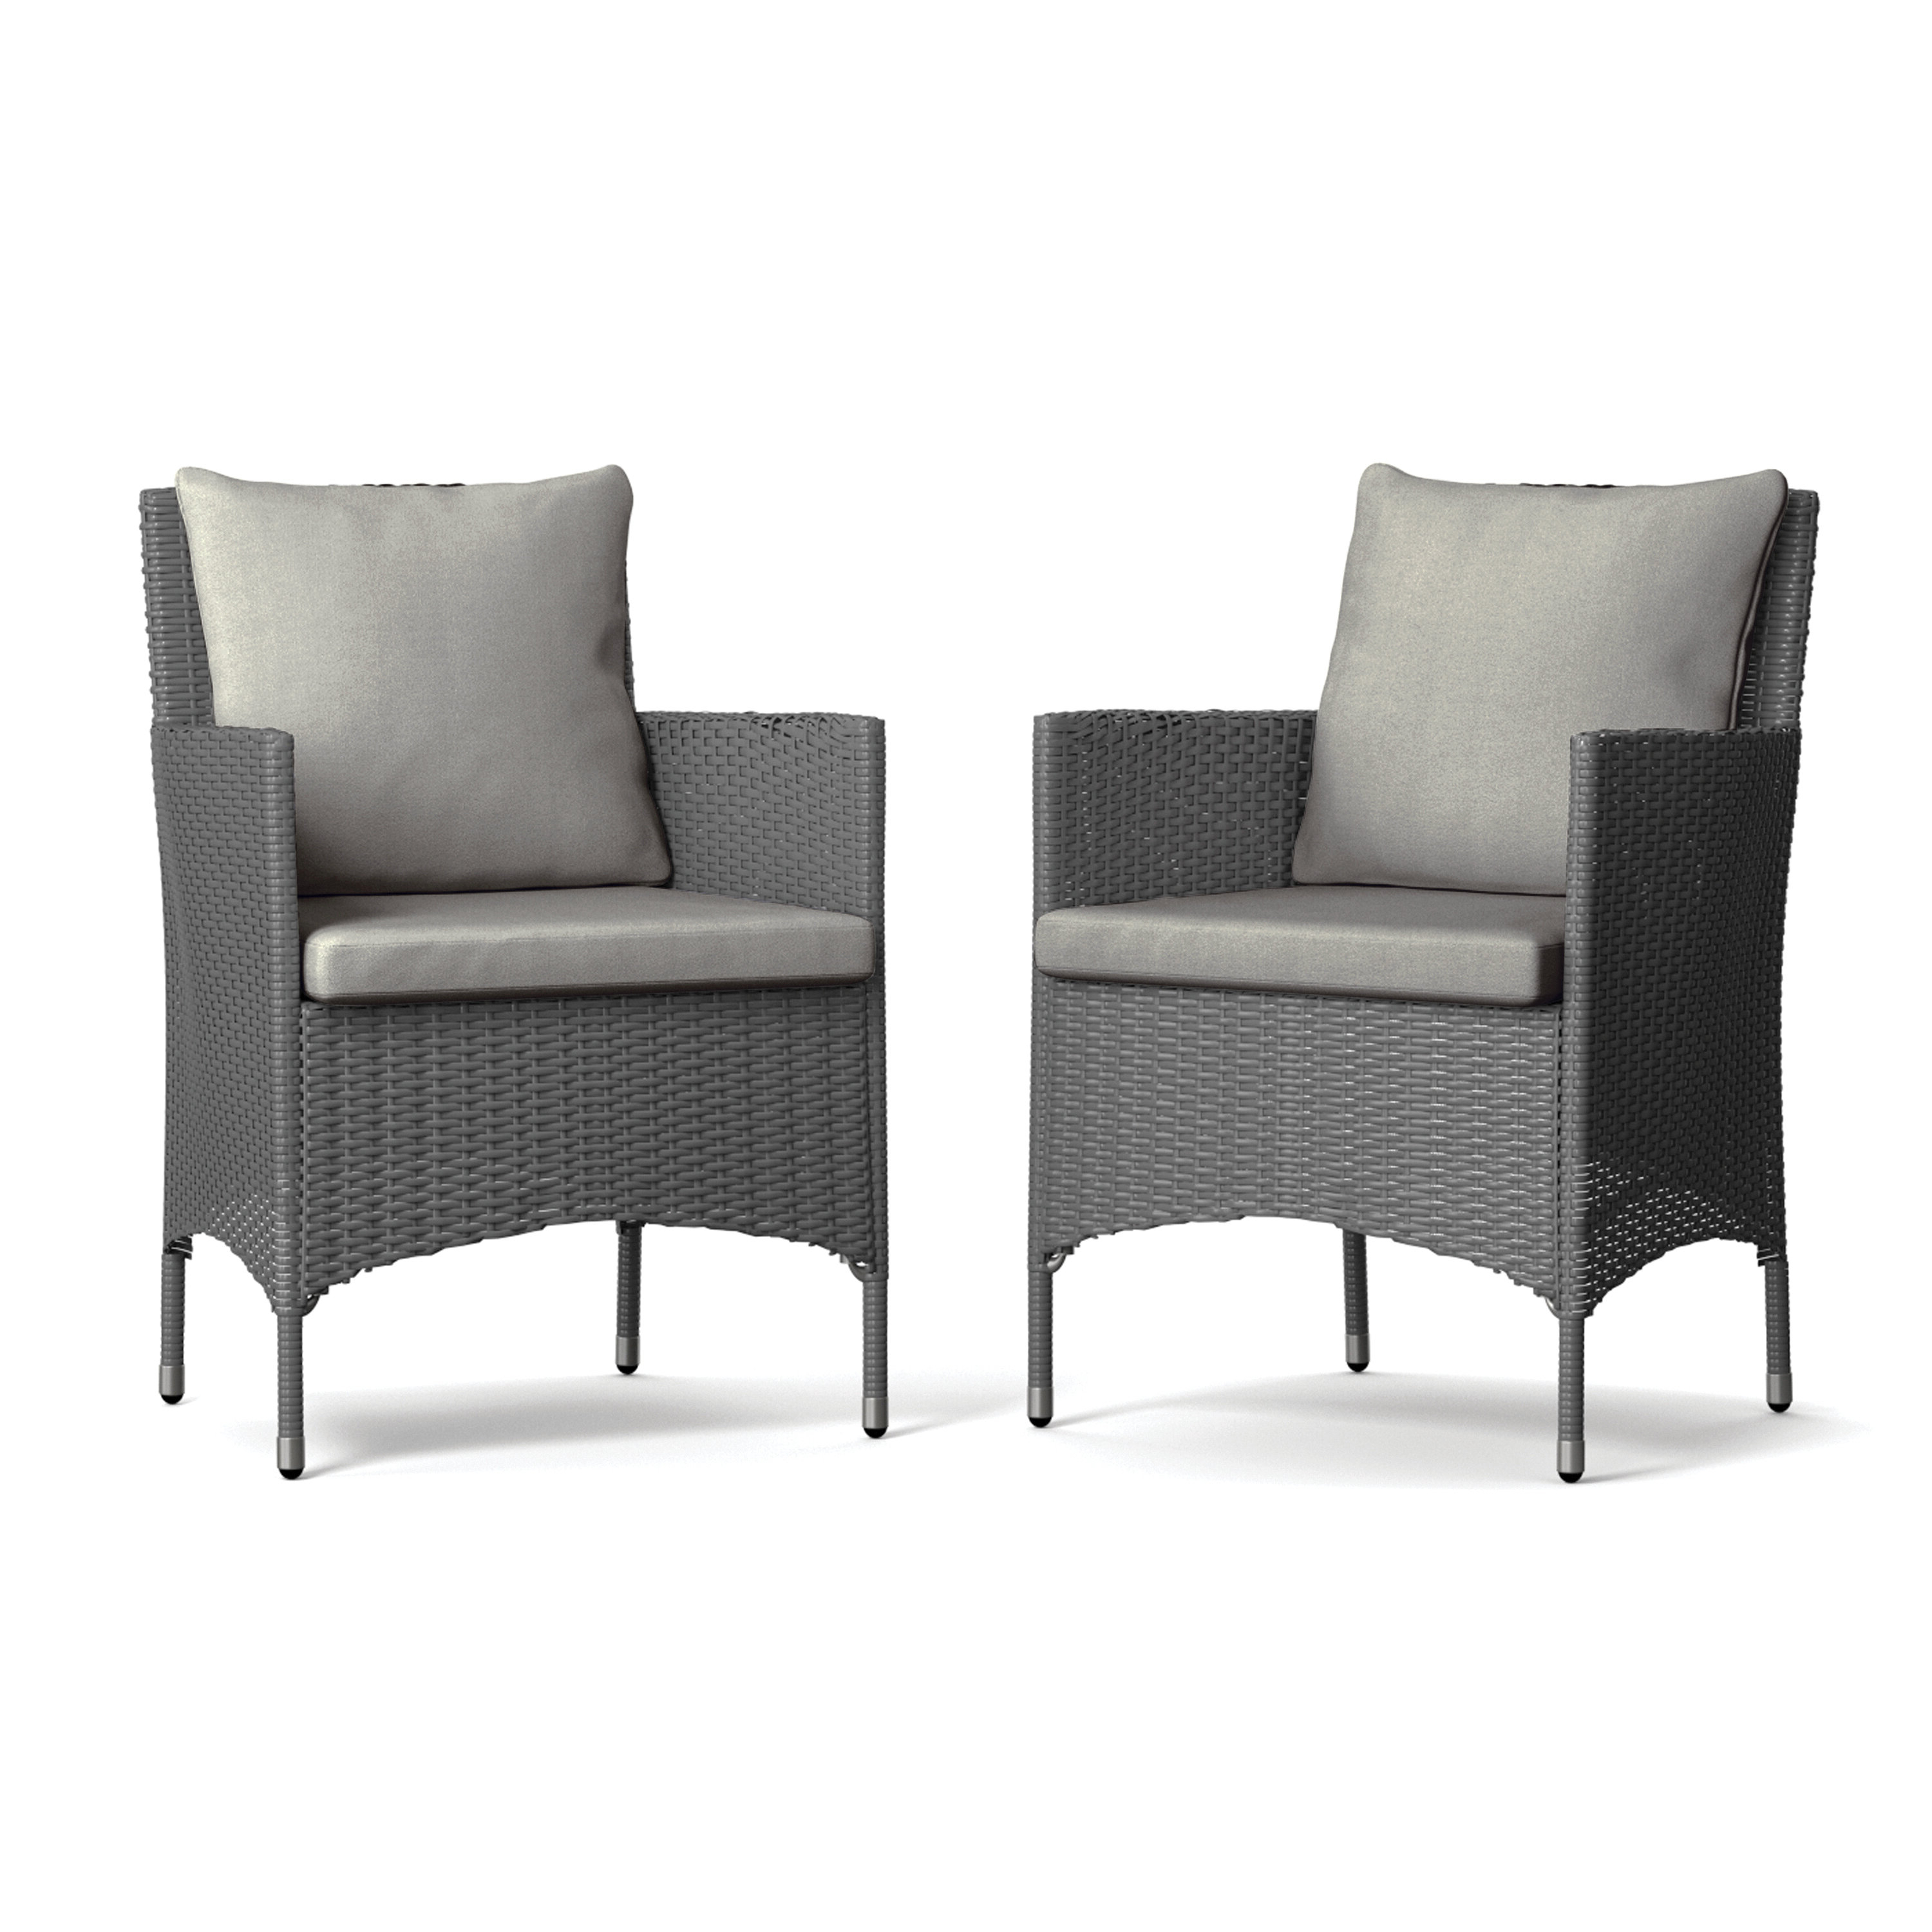 Best And Newest Ellie Patio Dining Chair With Cushion Pertaining To Keiran Patio Sofas With Cushions (View 17 of 20)